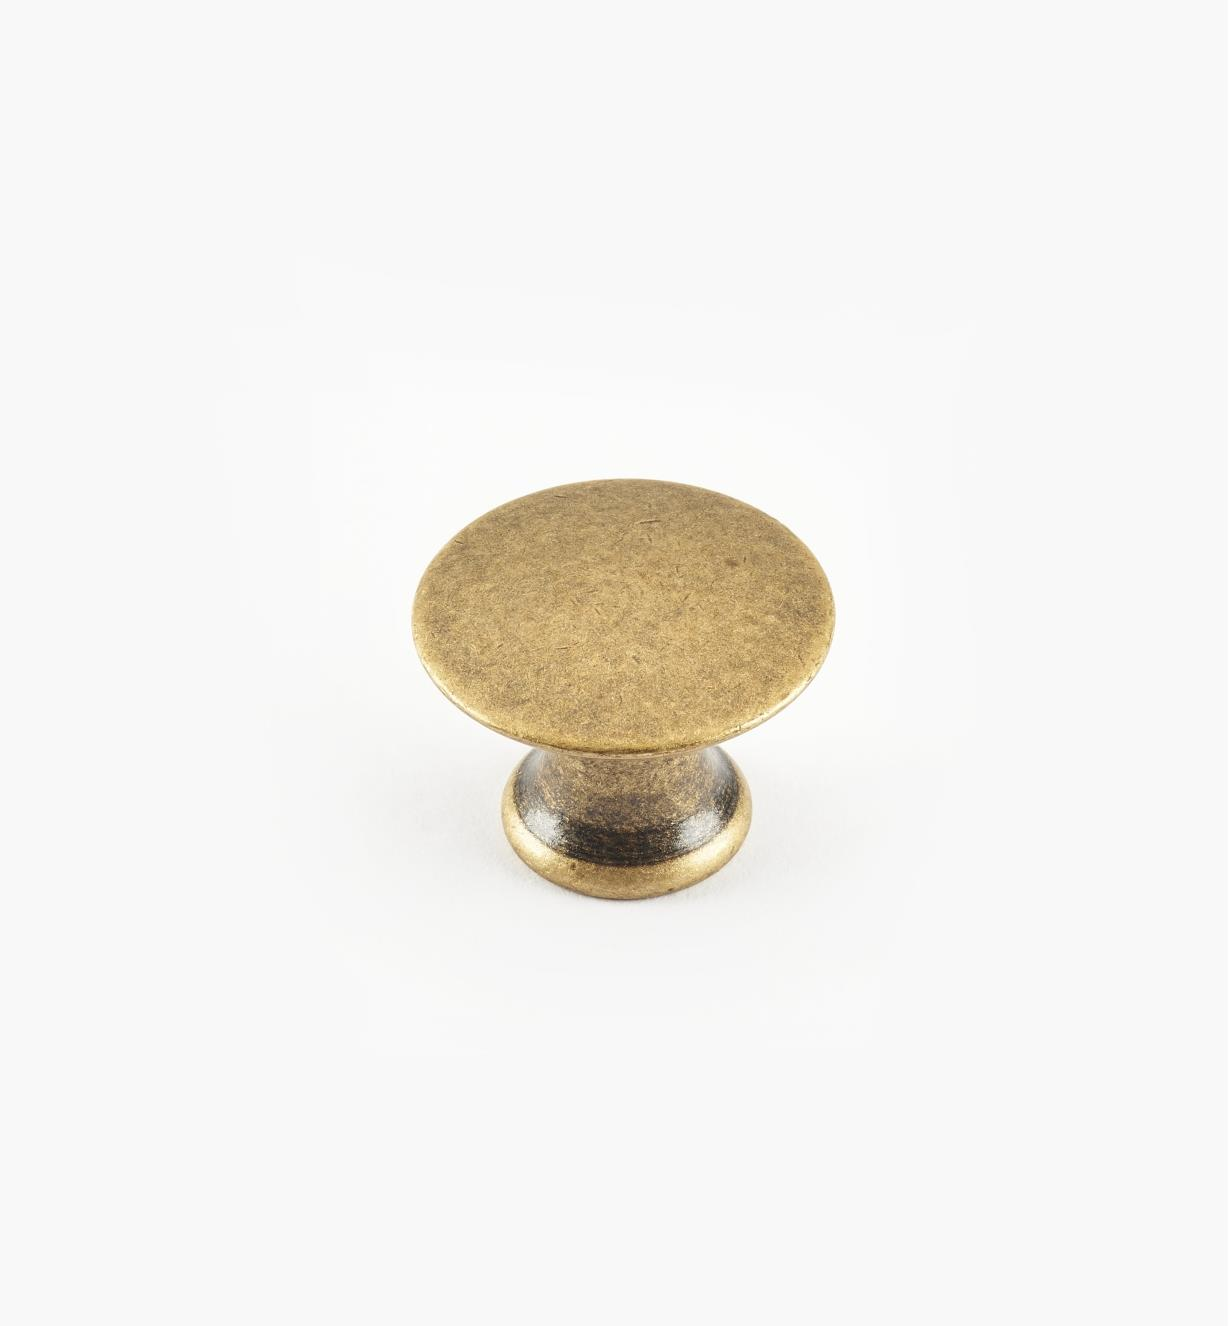 01A0218 - 18mm x 14mmAntique Brass Plain Knob